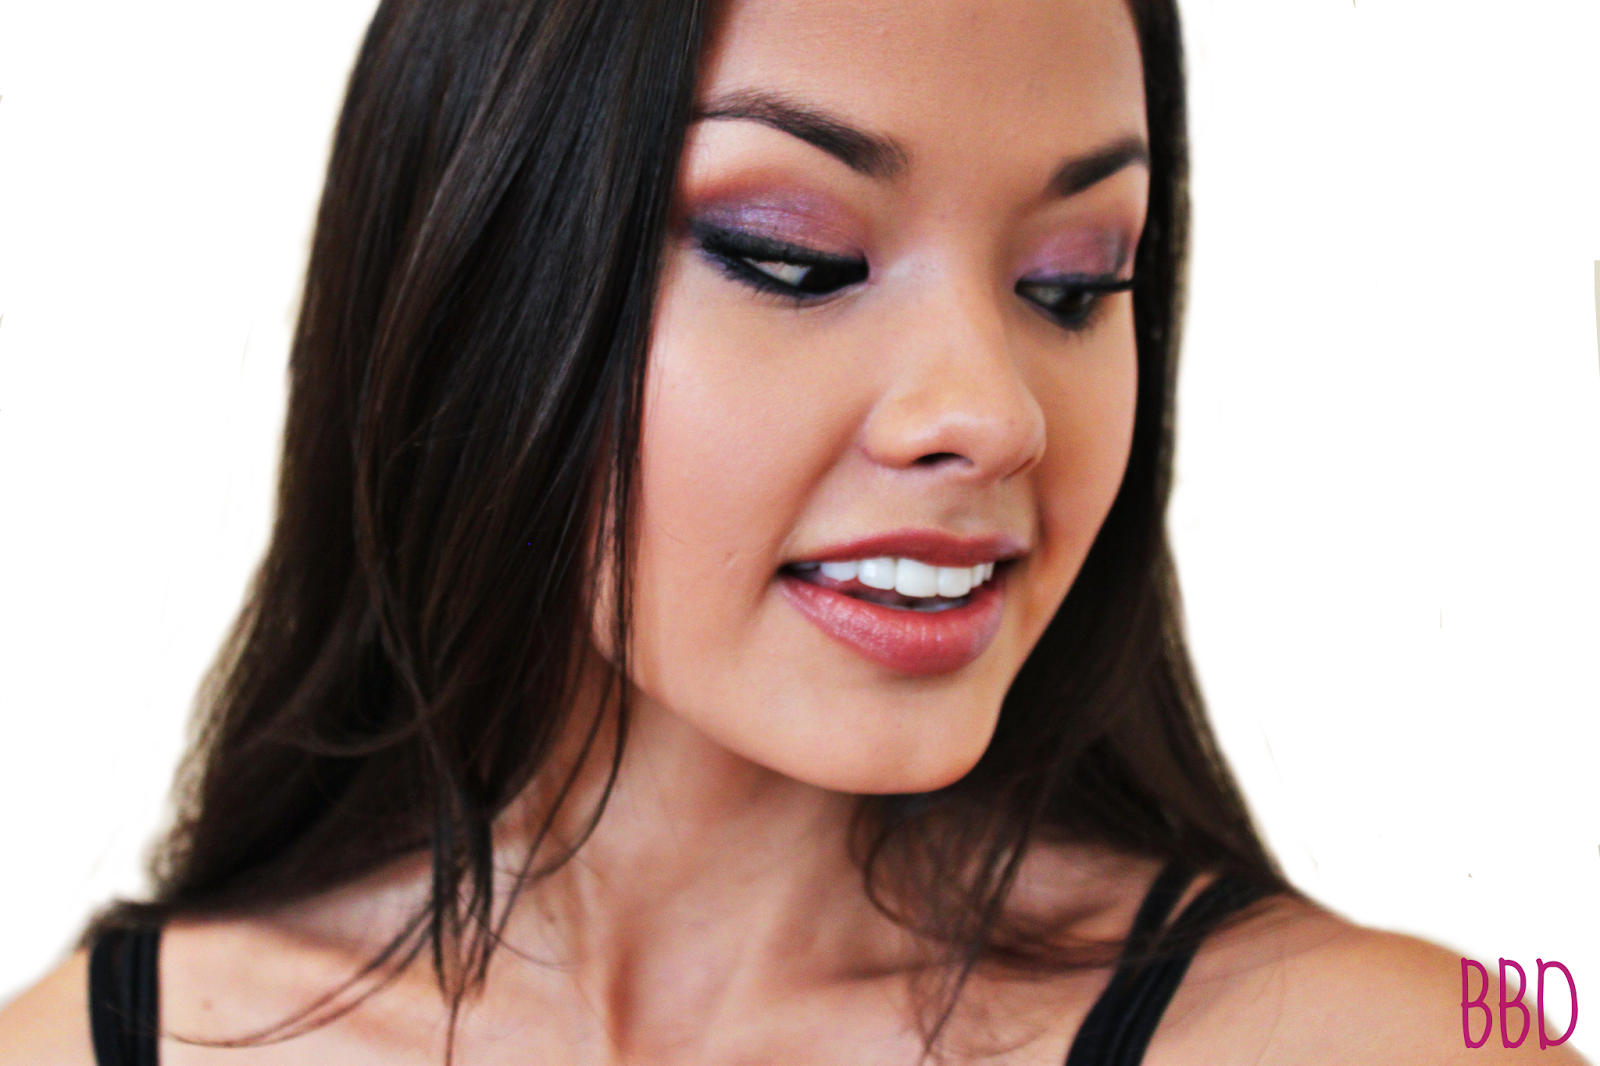 LOTD: Look of the Day, Purple Neon Duochrome Smokey Look the beauty breakdown